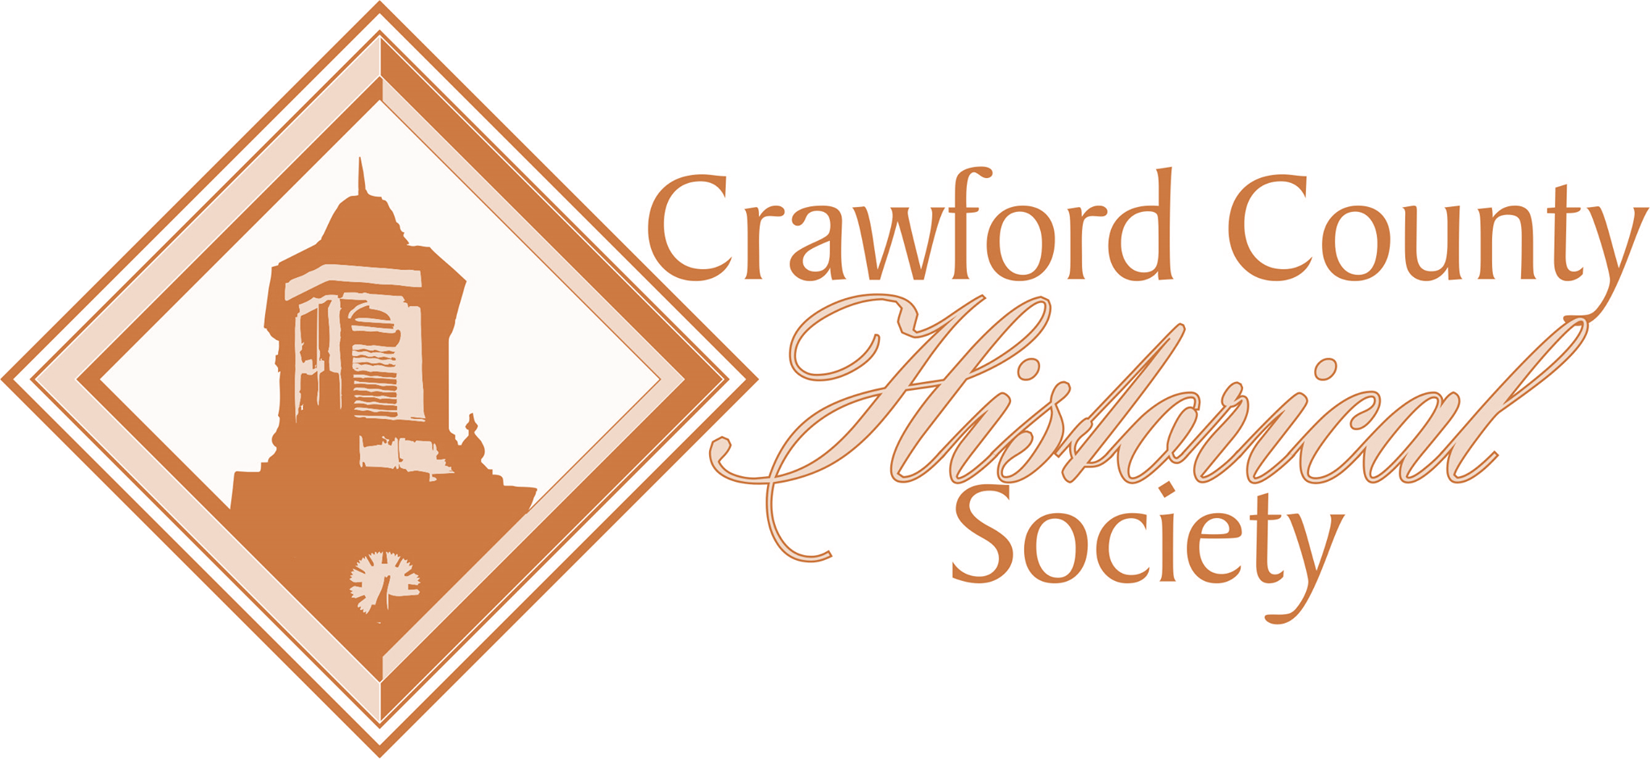 about crawford county historical society